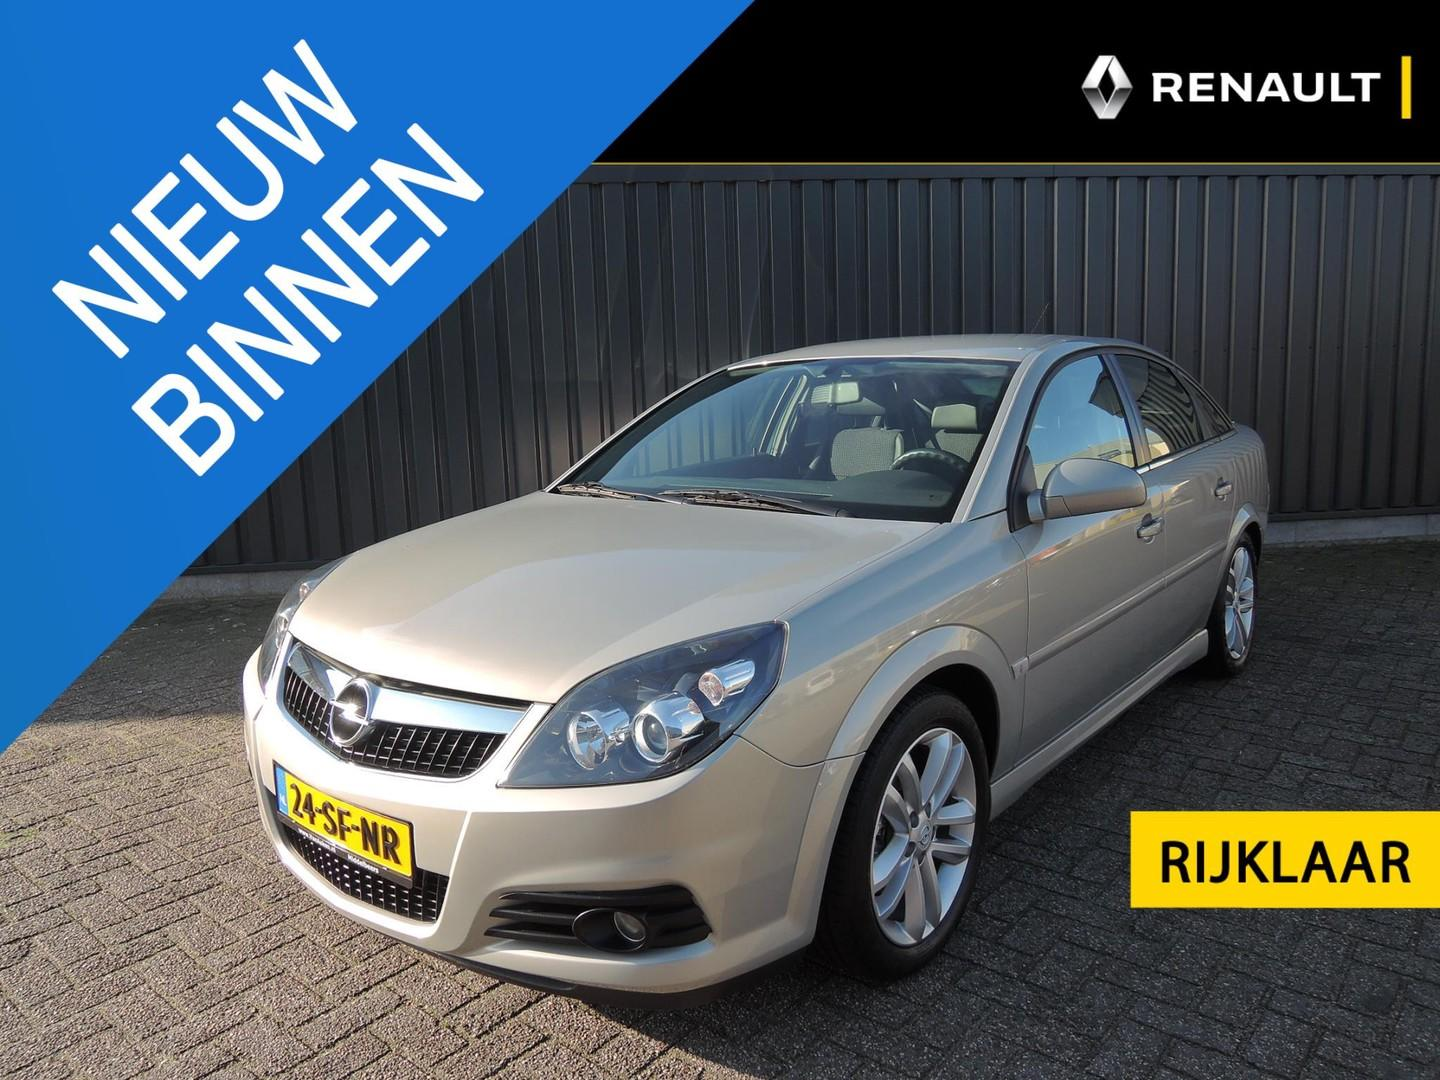 Opel Vectra Gts 1.8-16v sport unieke km stand!